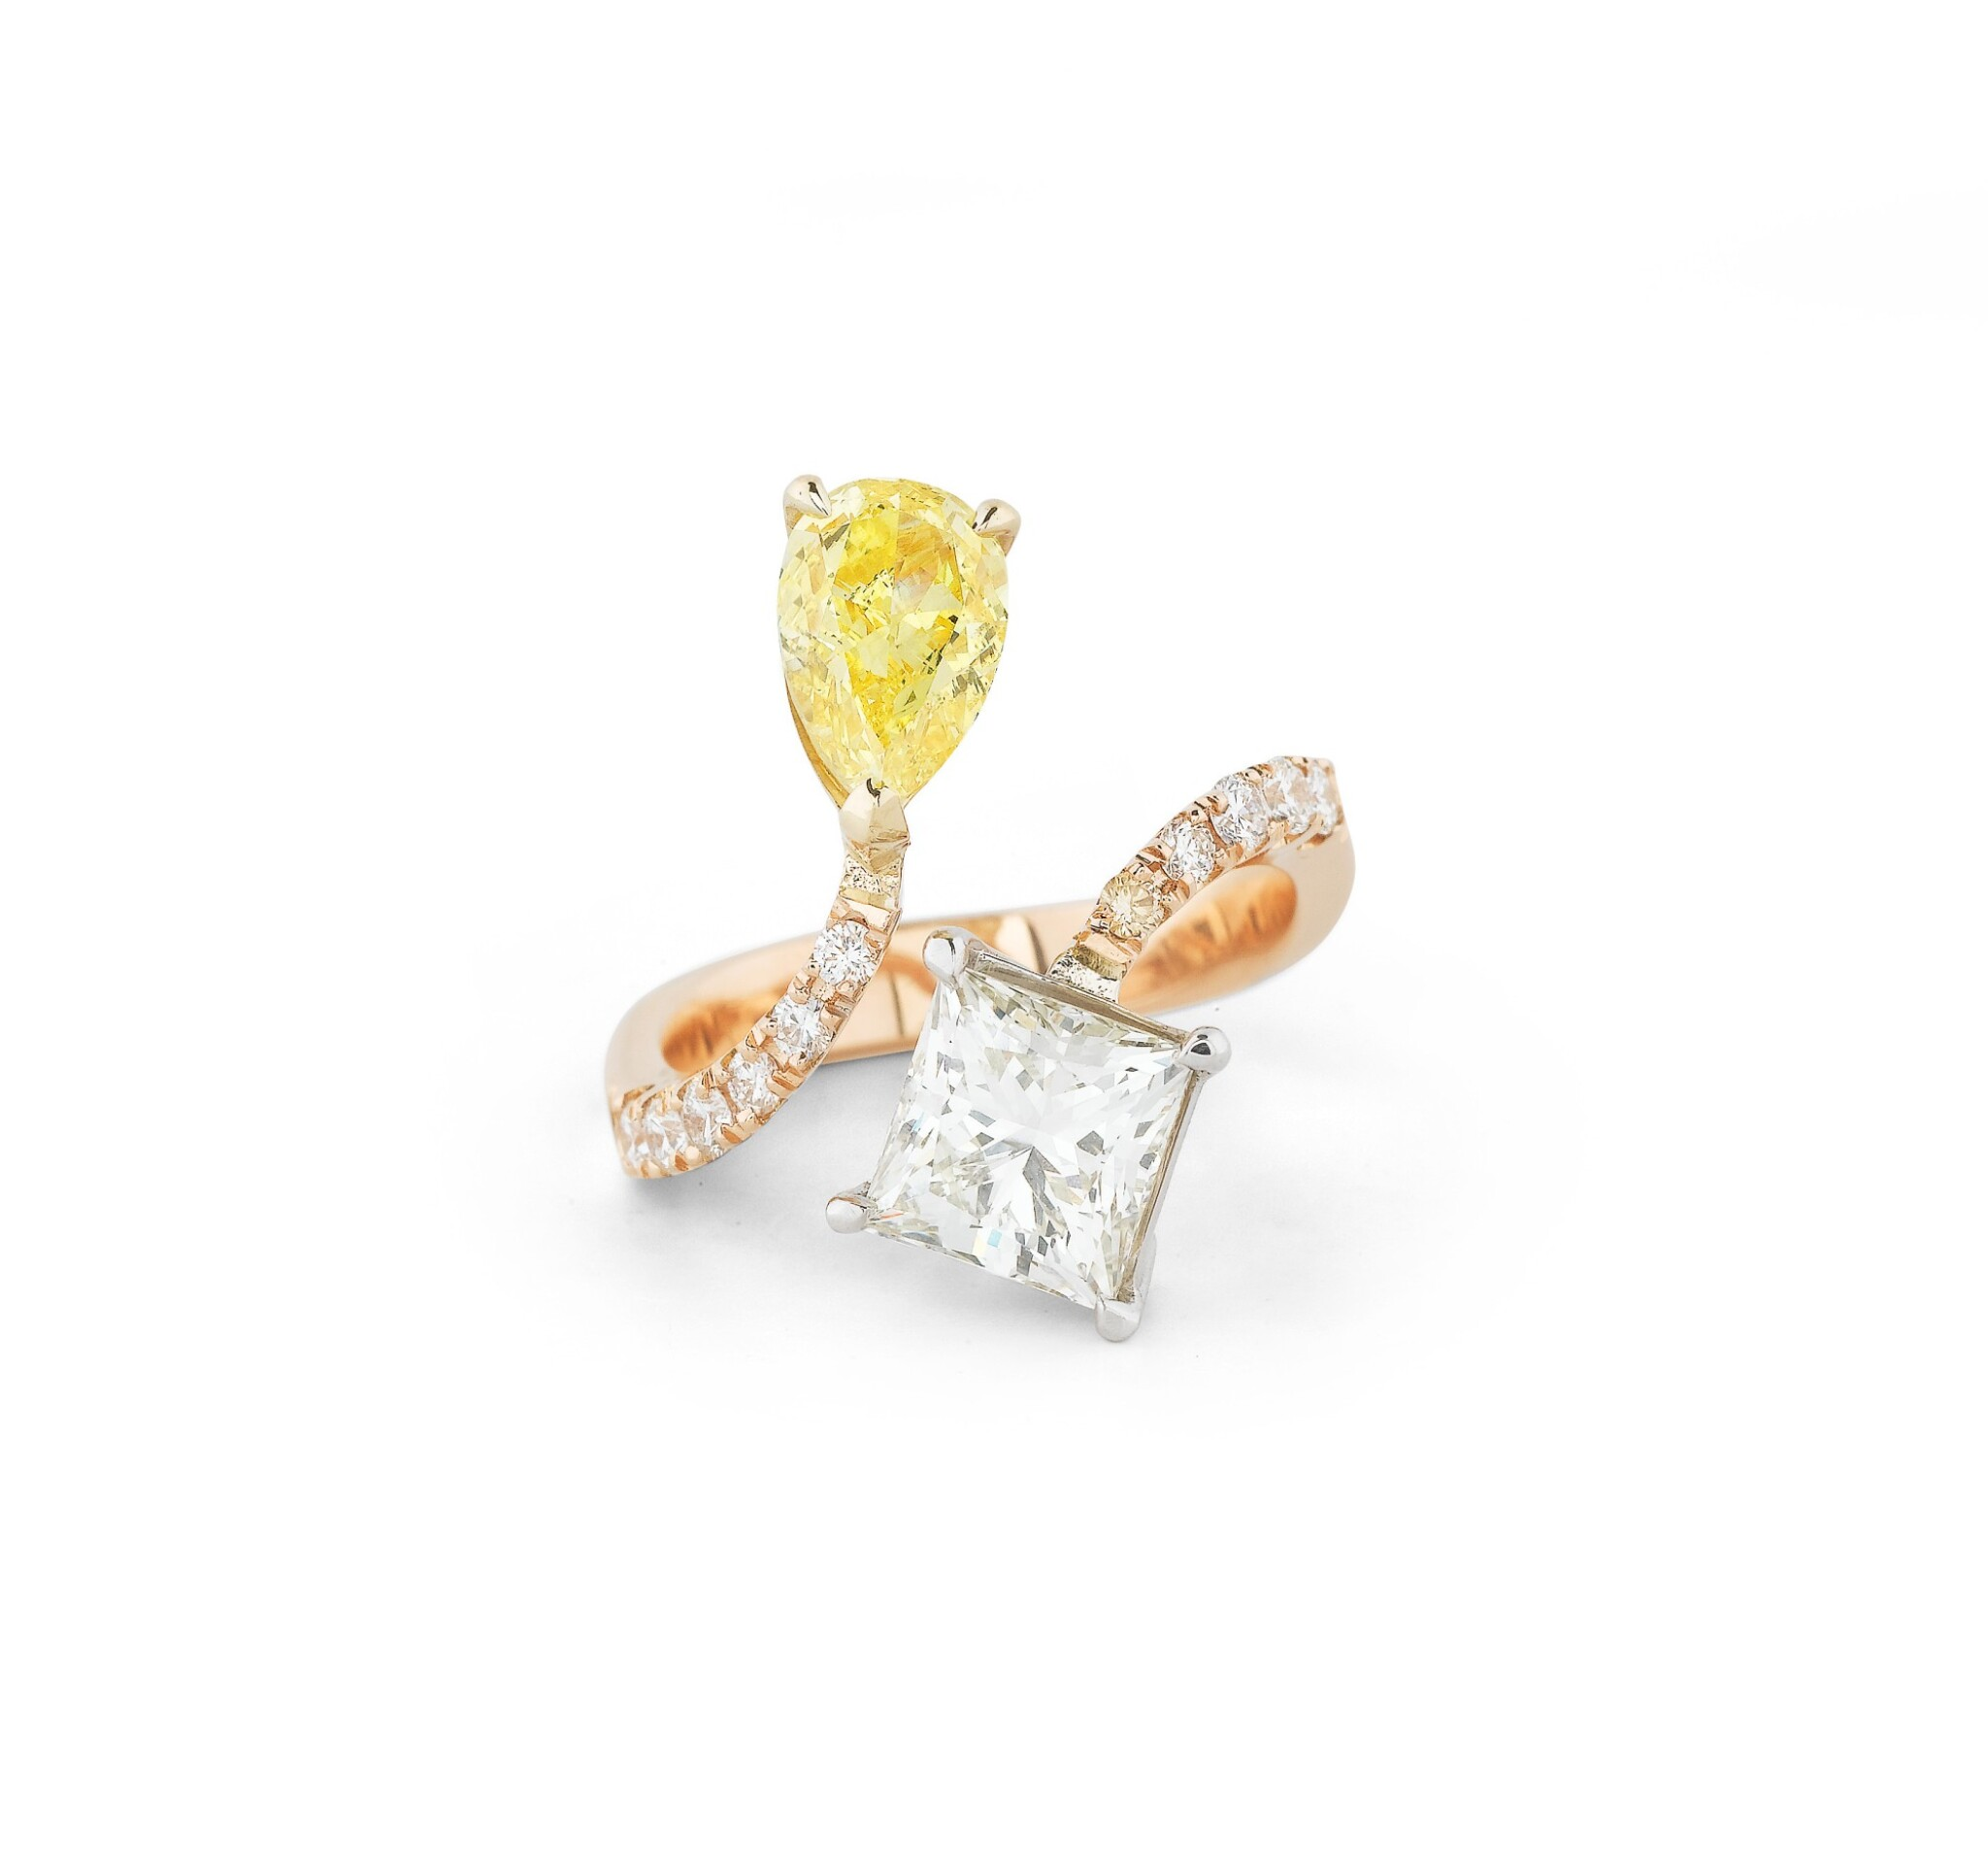 View full screen - View 1 of Lot 137. BAGUE DIAMANT FANCY VIVID YELLOW ET DIAMANTS | FANCY VIVID YELLOW DIAMOND AND DIAMOND RING.